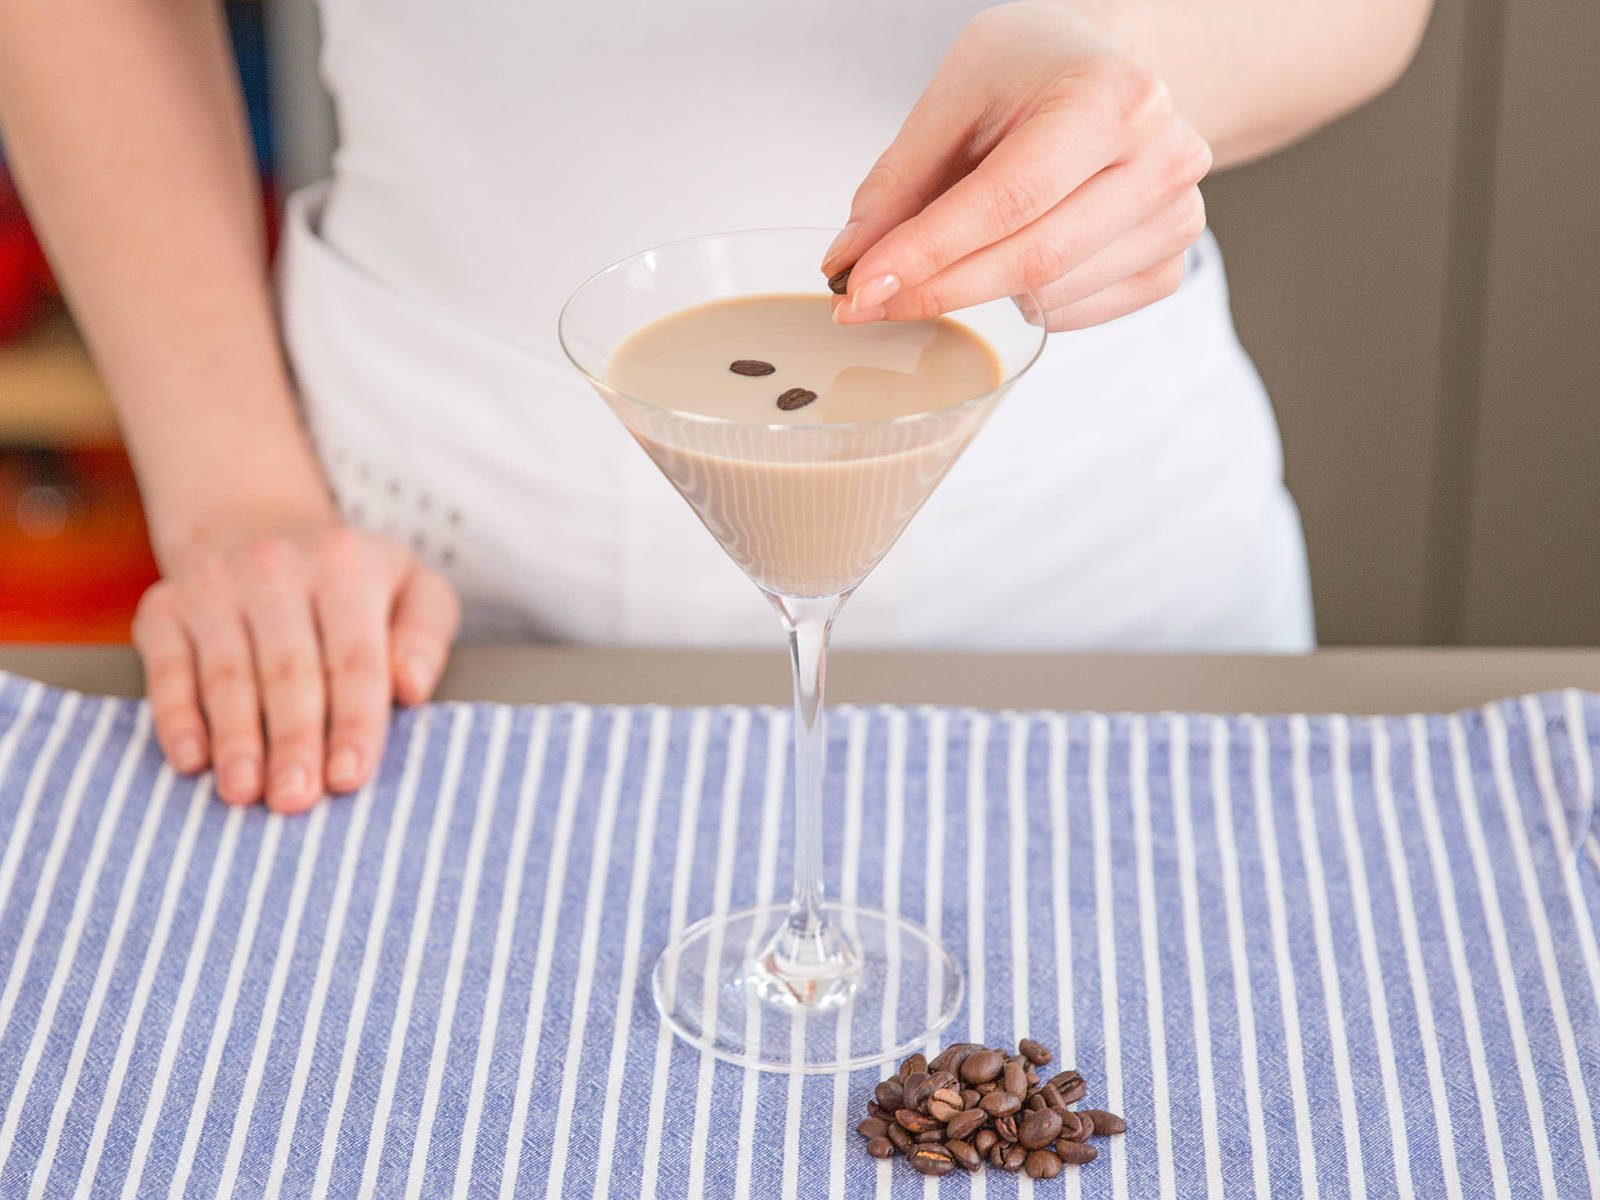 Pour into a martini glass for serving. Garnish with whole coffee beans. Enjoy!